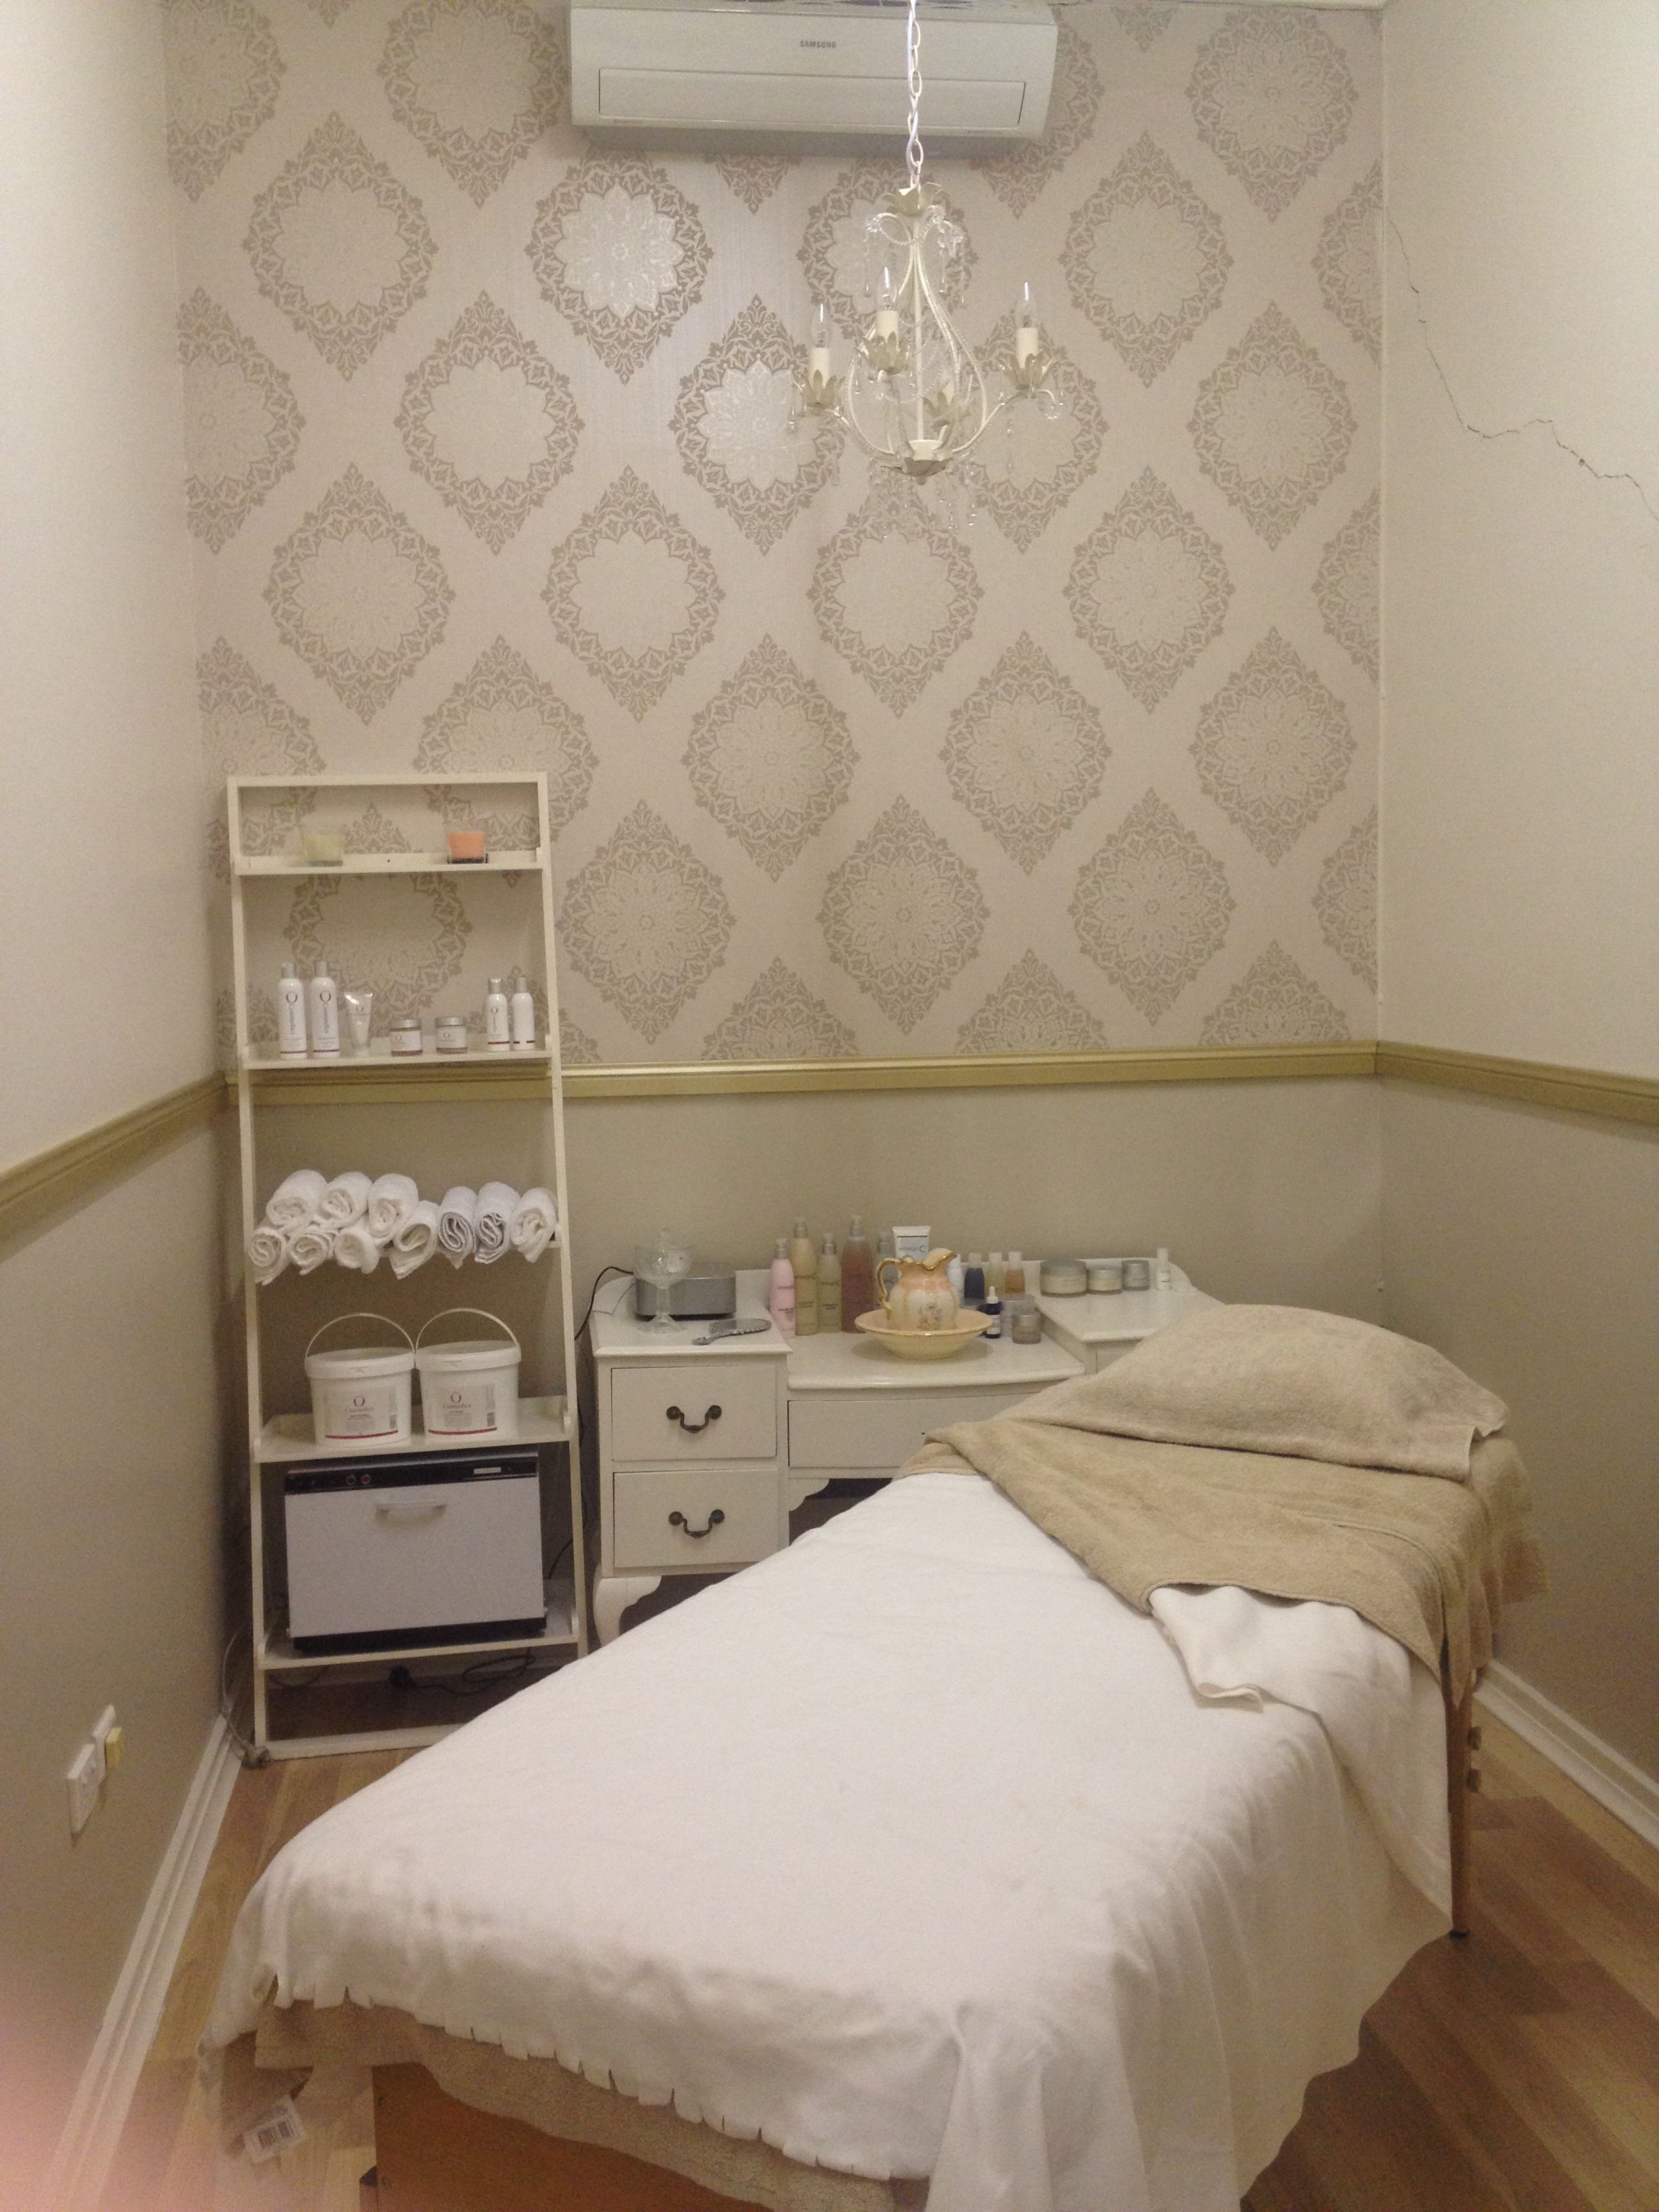 Glamour beauty facial treatment massage relaxation room shabby chic luxe and glamour wallpaper warm whites and gold